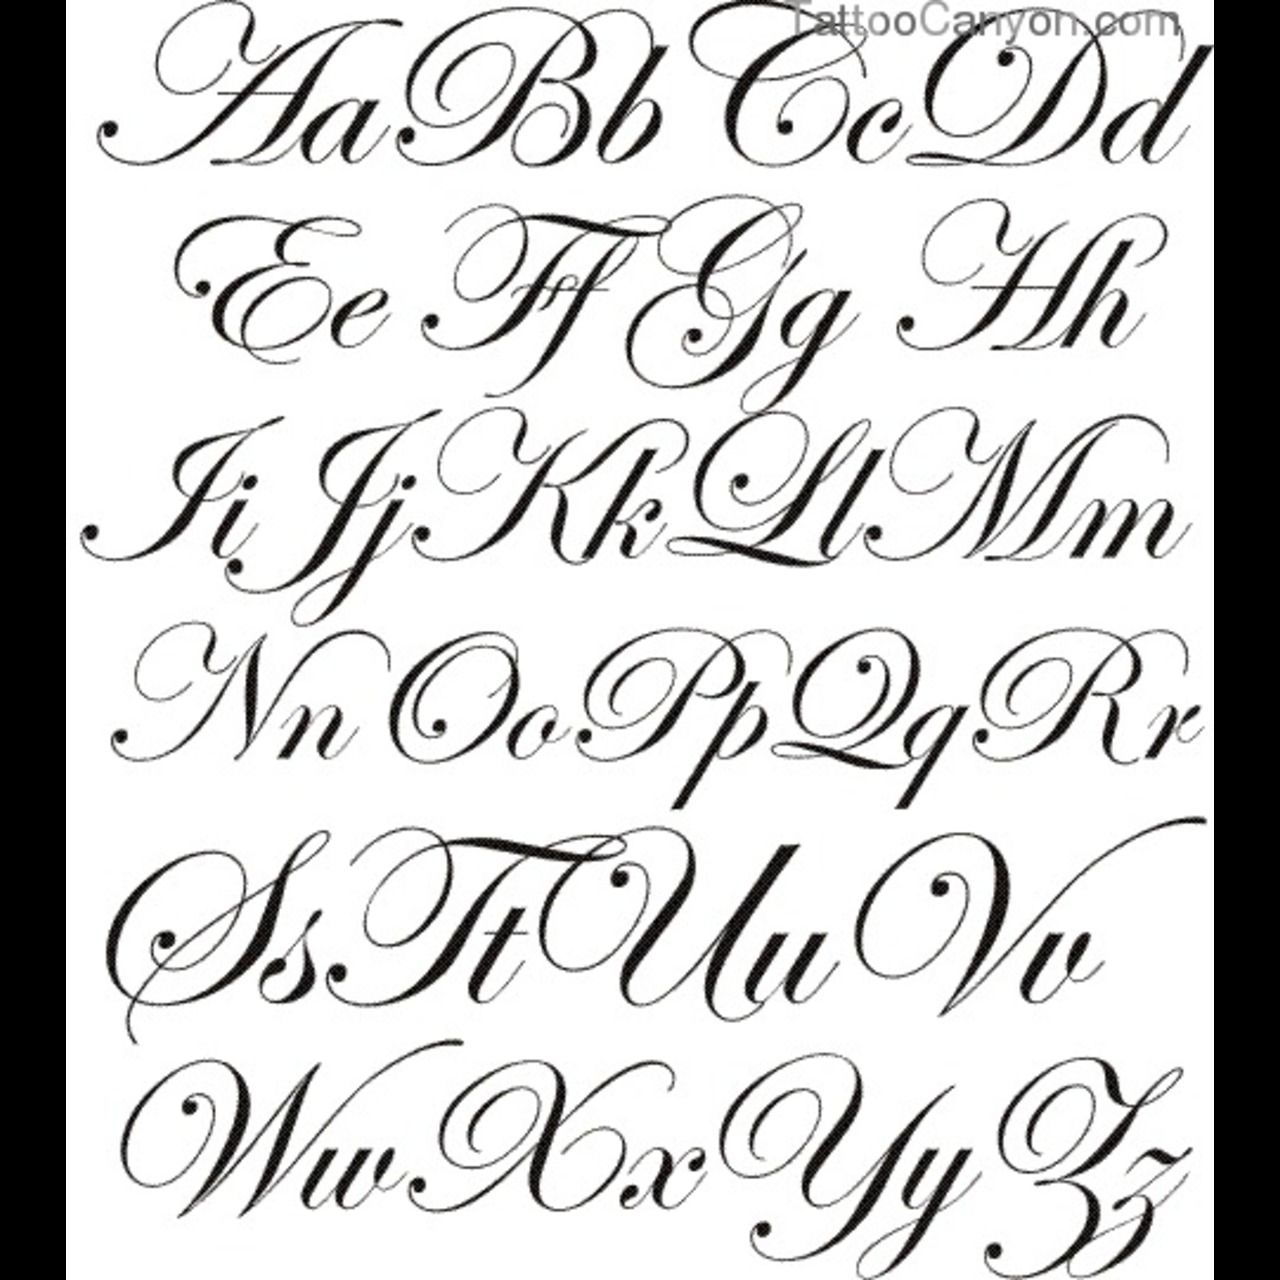 Copperplate Calligraphy Font Free 13 Calligraphy Fonts Alphabet Free Download Images Tat